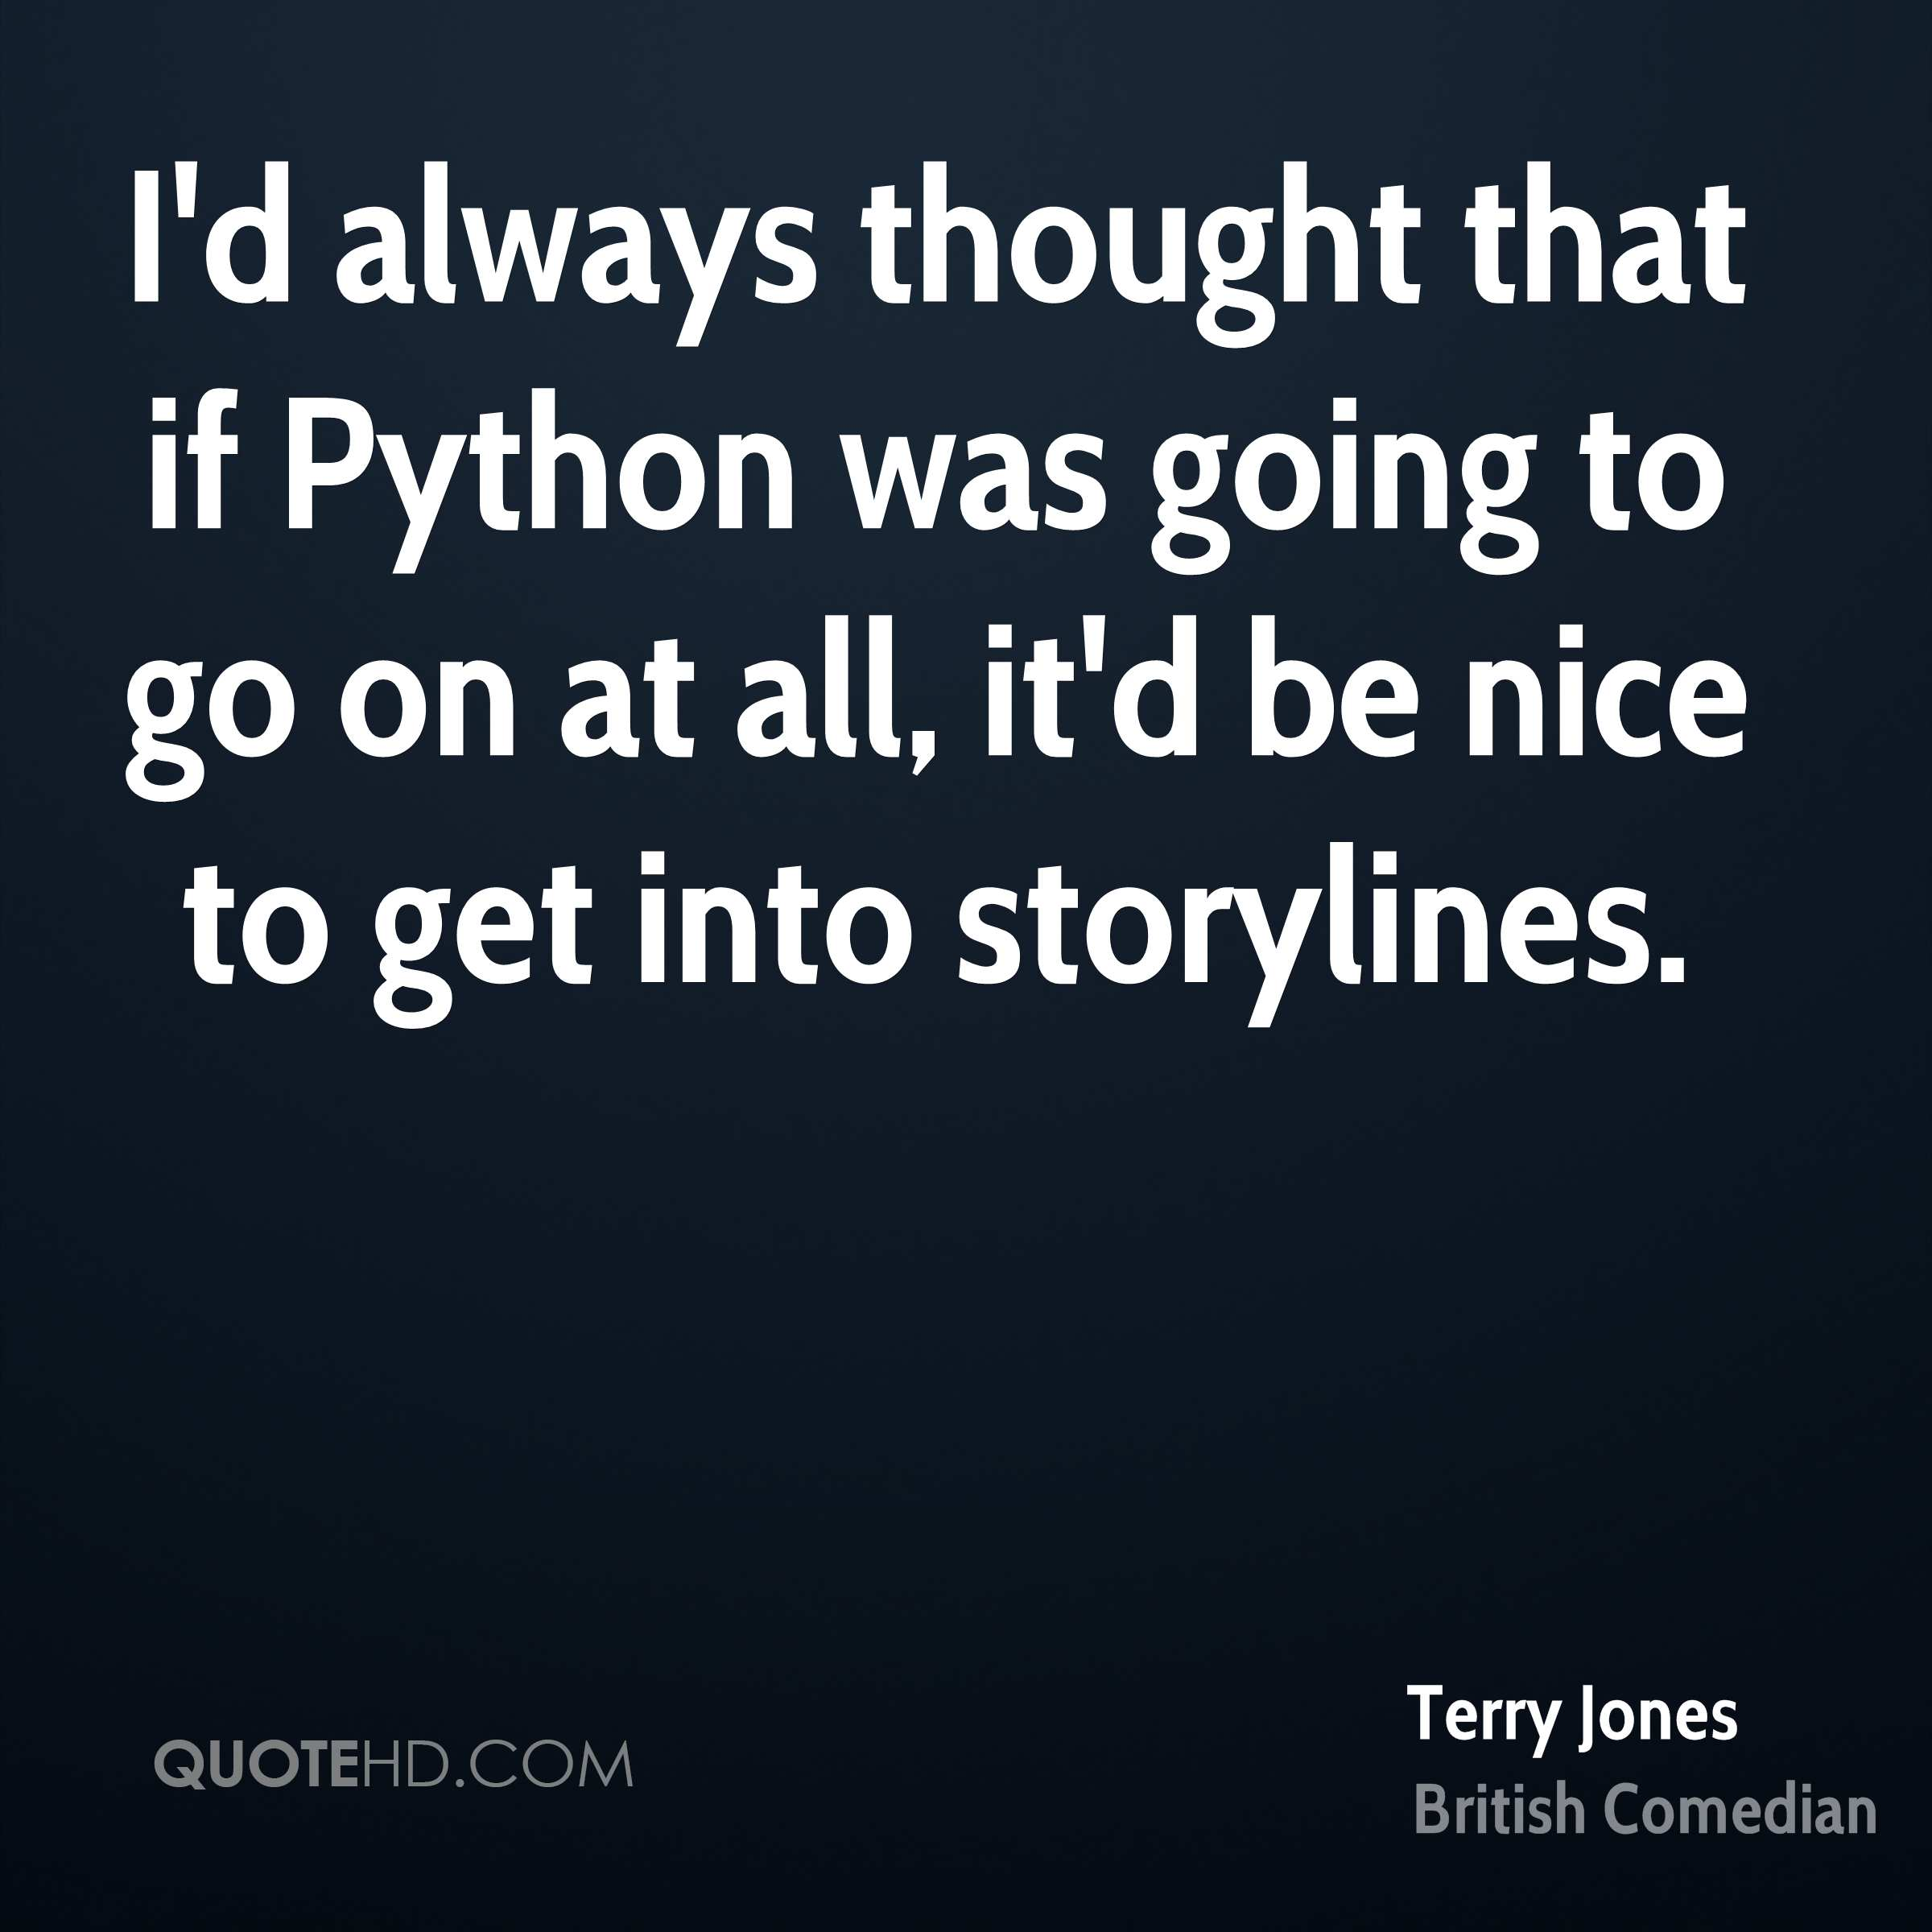 I'd always thought that if Python was going to go on at all, it'd be nice to get into storylines.